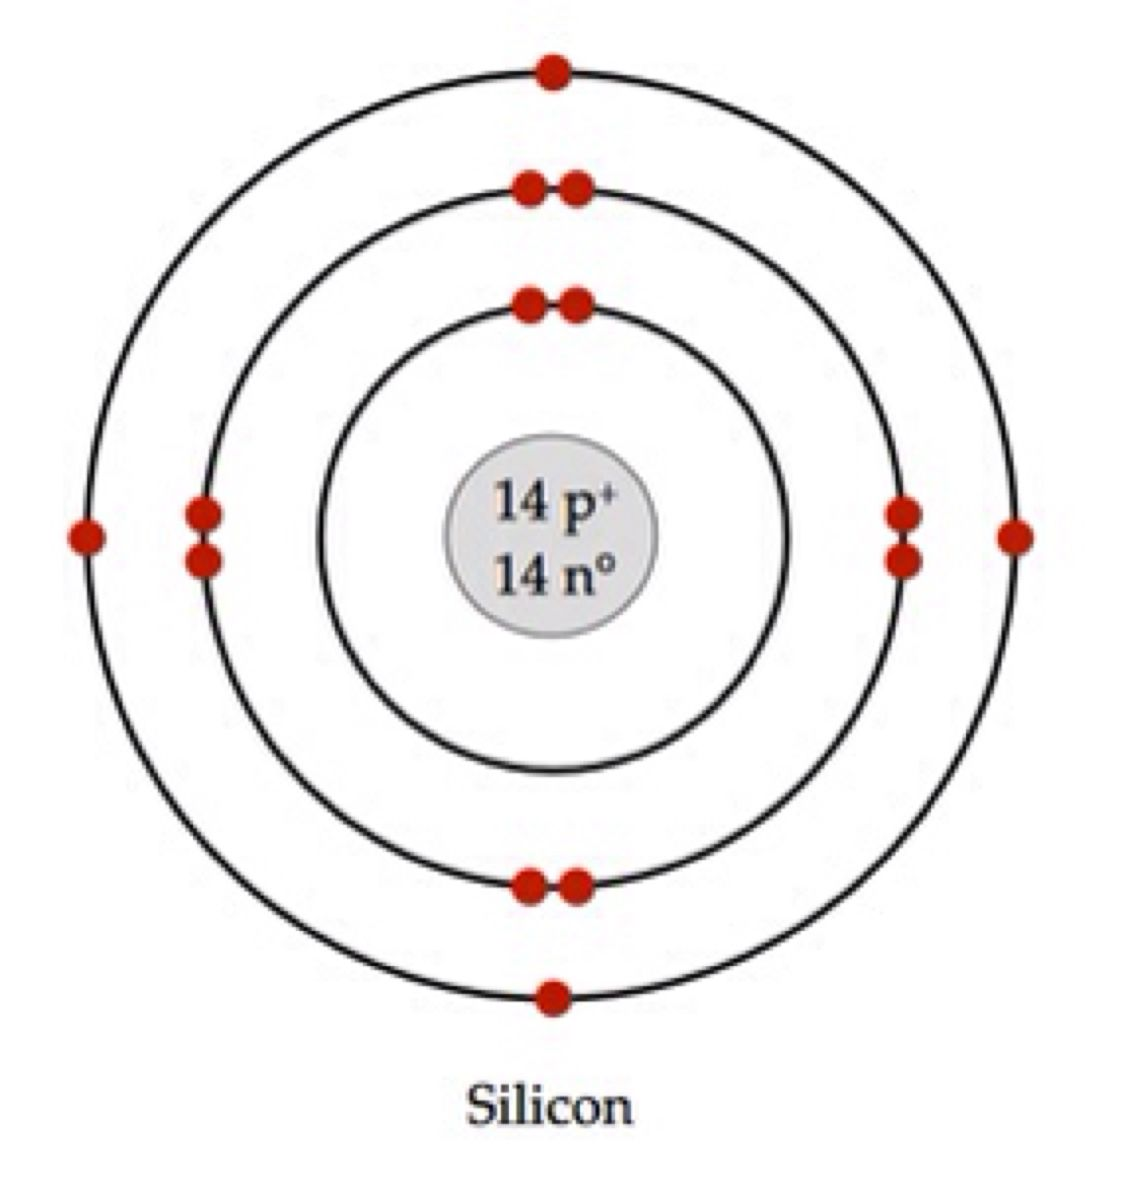 hight resolution of image result for silicon atomic model school ionization energy bohr diagram silicon atom